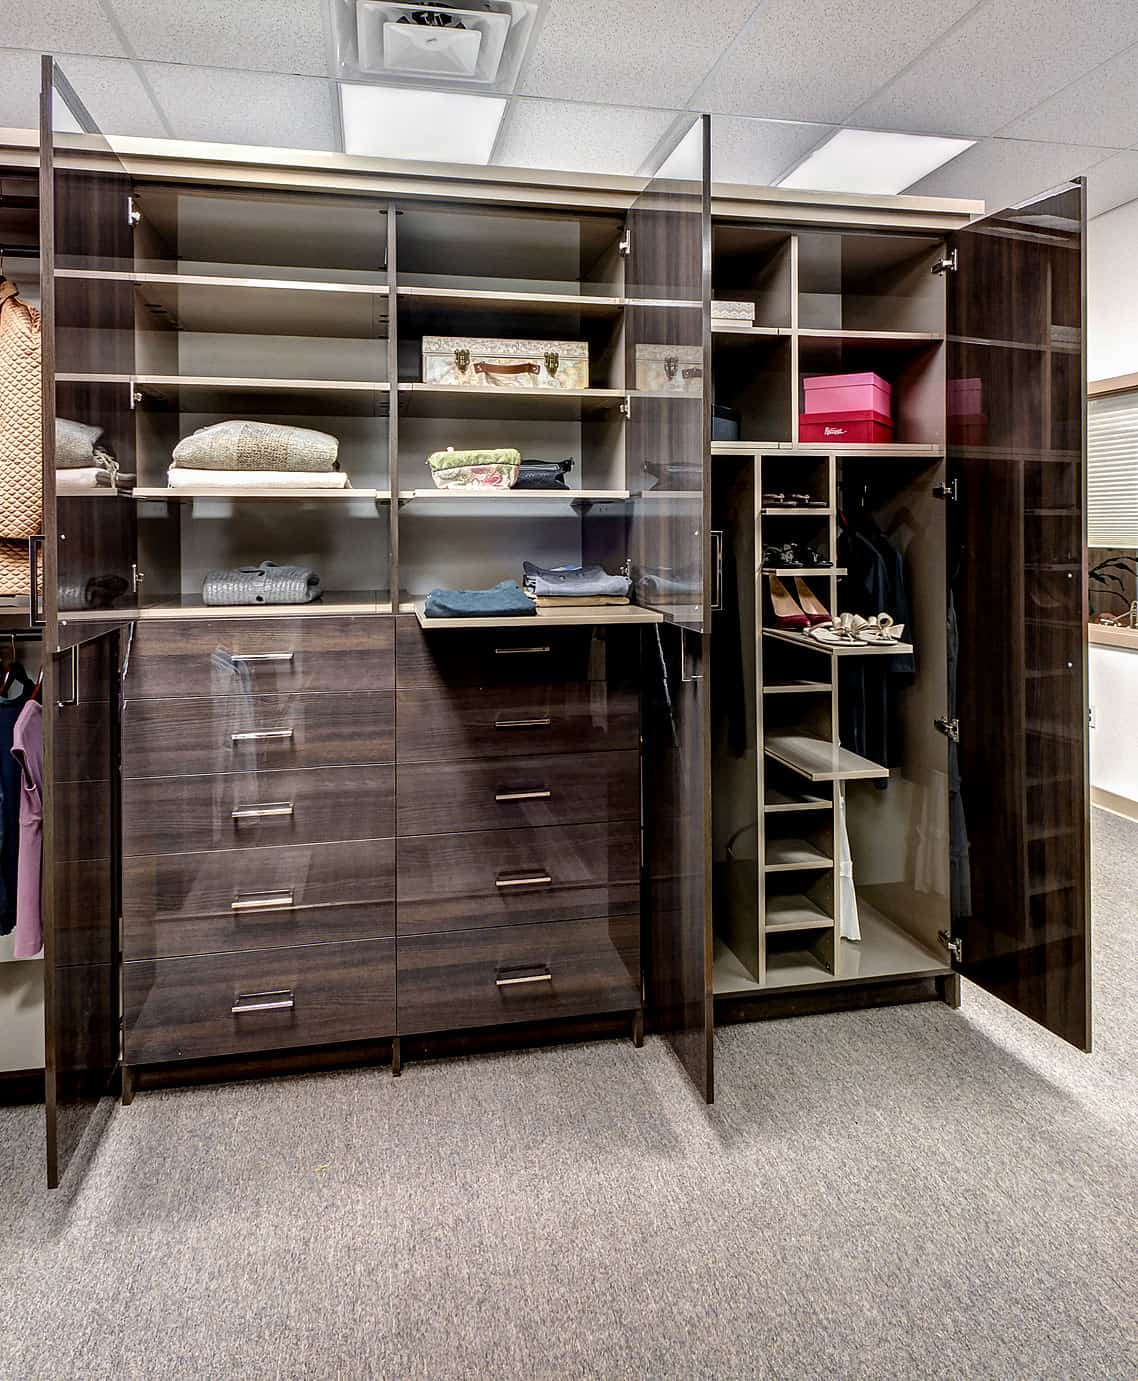 Reach-in closet with drawers and plenty of storage space for clothes, shoes, and other items.